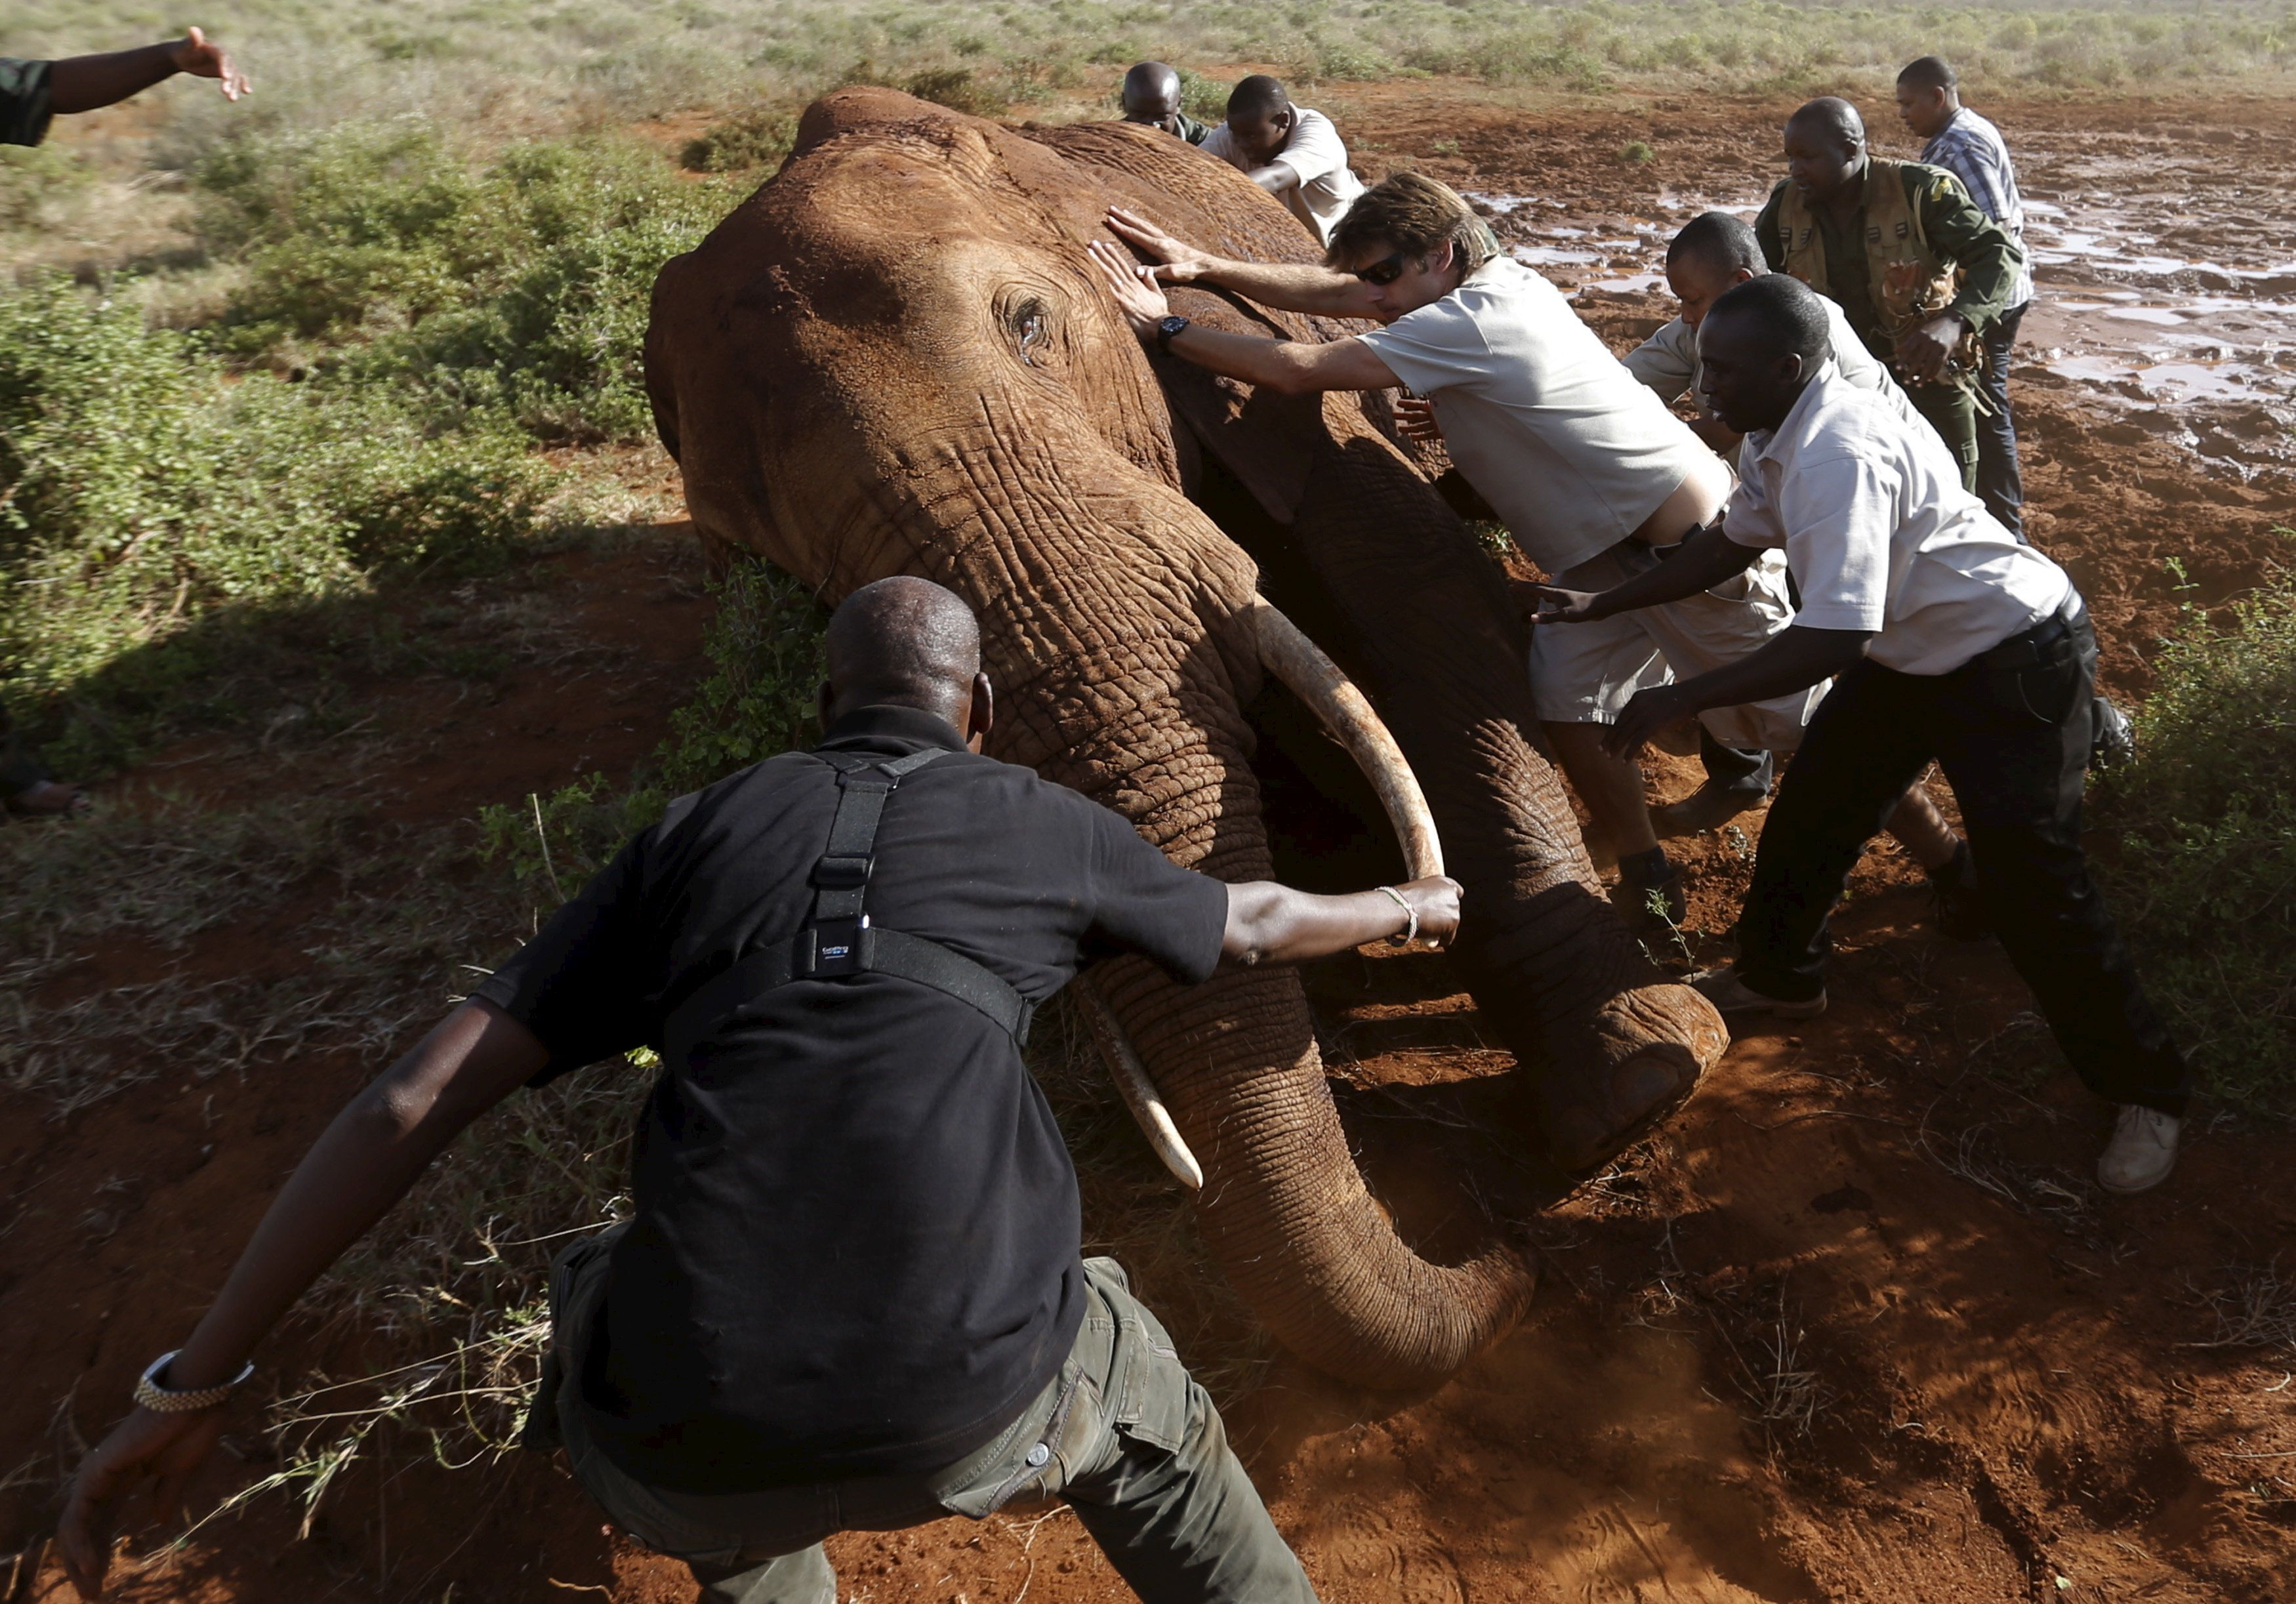 Kenya Wildlife Service and Save The Elephants staff push an elephant as they undertake the collaring of ten elephants ranging near the Standard Gauge Railway to fit them with advanced satellite radio tracking collars in Tsavo National Park, Kenya March 15, 2016. REUTERS/Goran Tomasevic